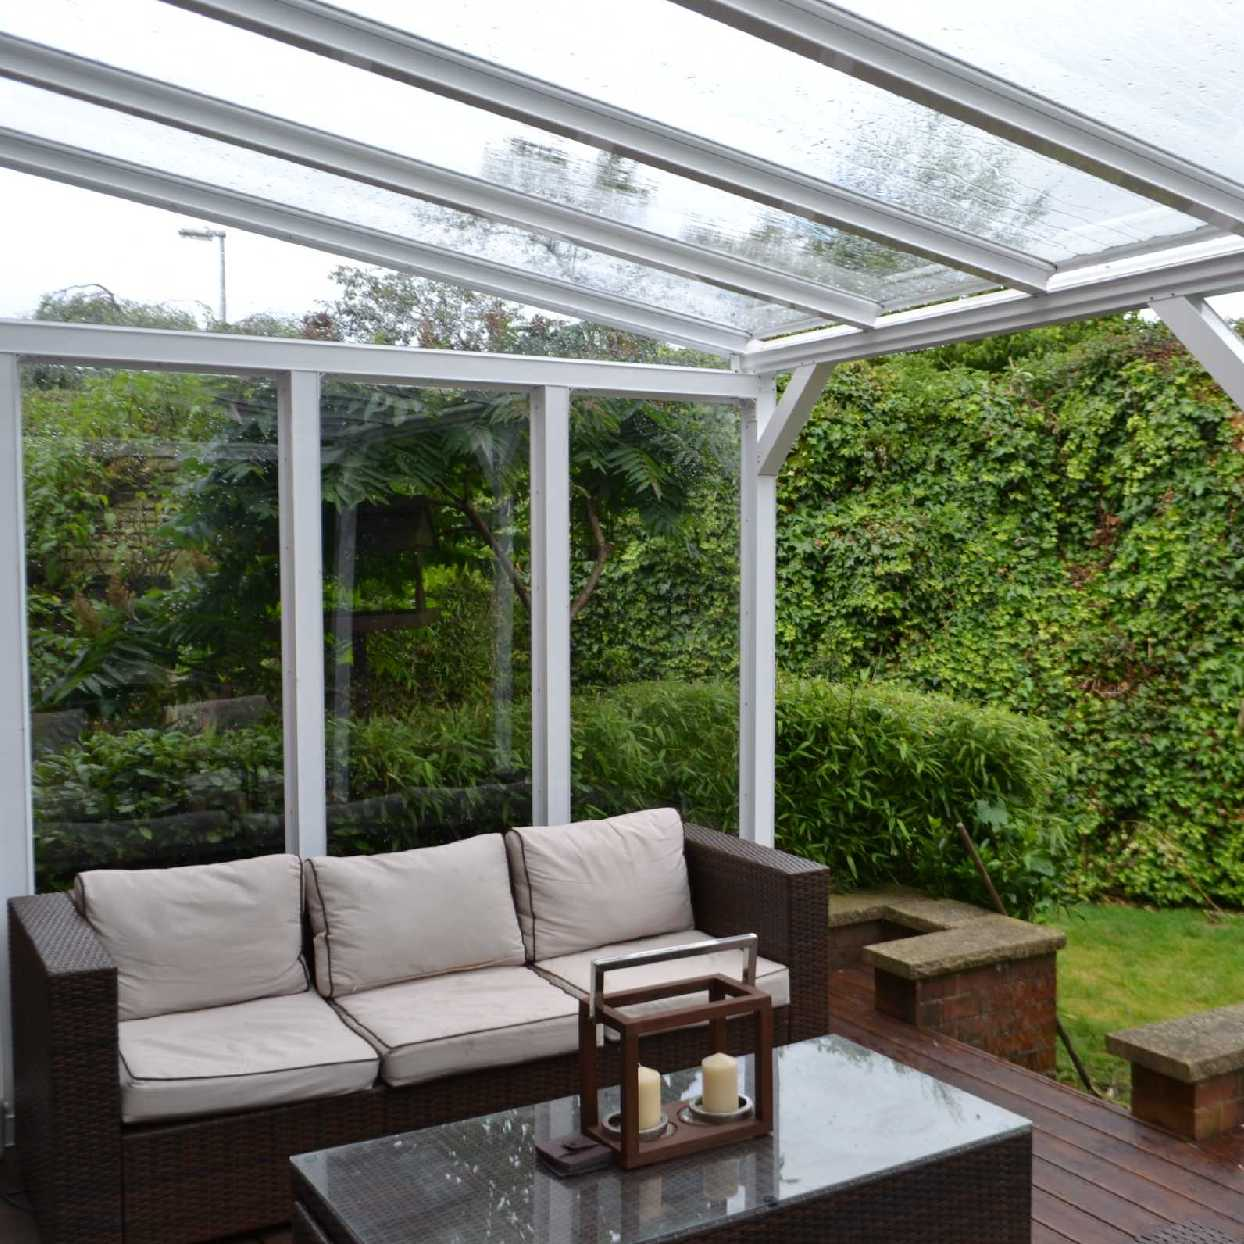 Omega Smart Lean-To Canopy with 6mm Glass Clear Plate Polycarbonate Glazing - 6.3m (W) x 4.0m (P), (4) Supporting Posts